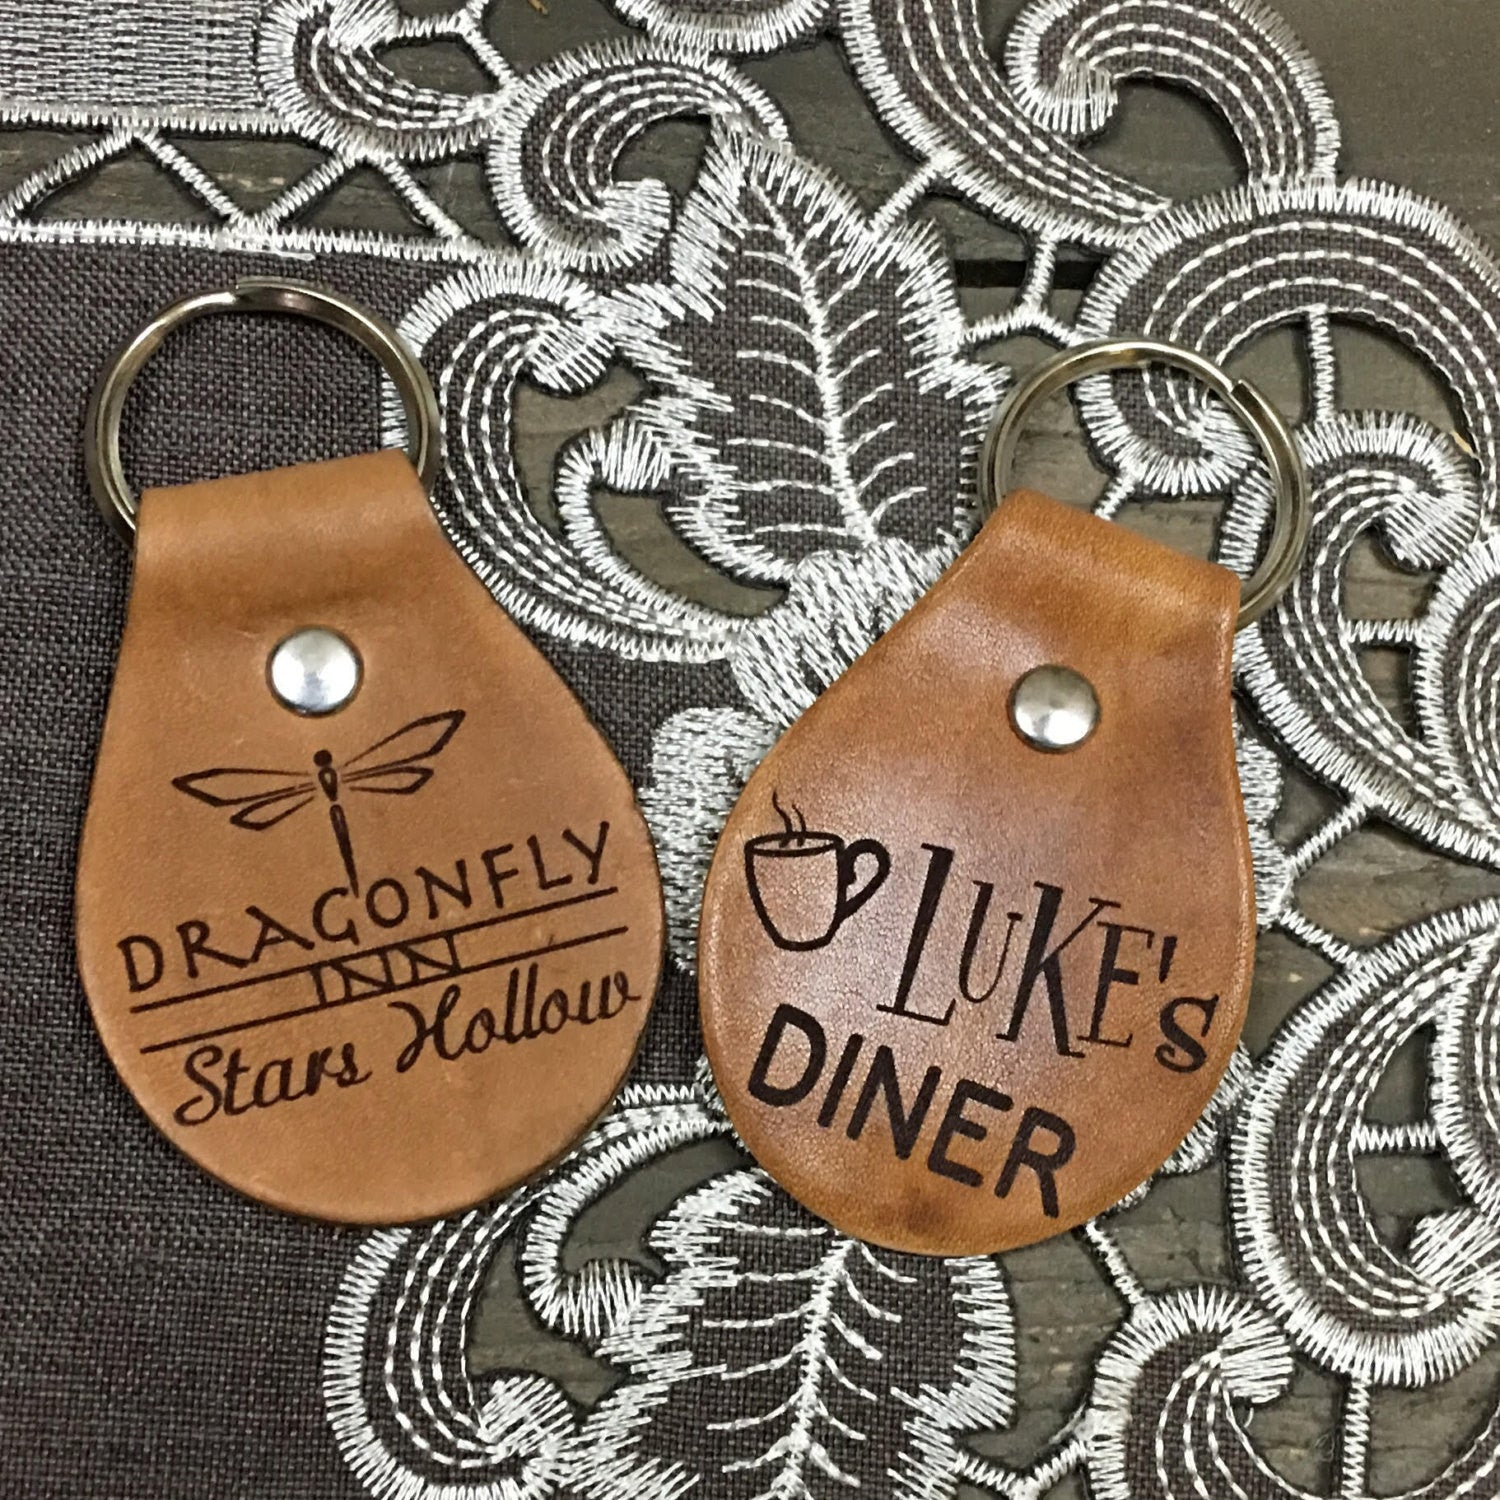 Dragonfly Inn or Luke's Diner Stars Hollow Key Chain Fob - Gilmore Girls - Engraved Tan Leather